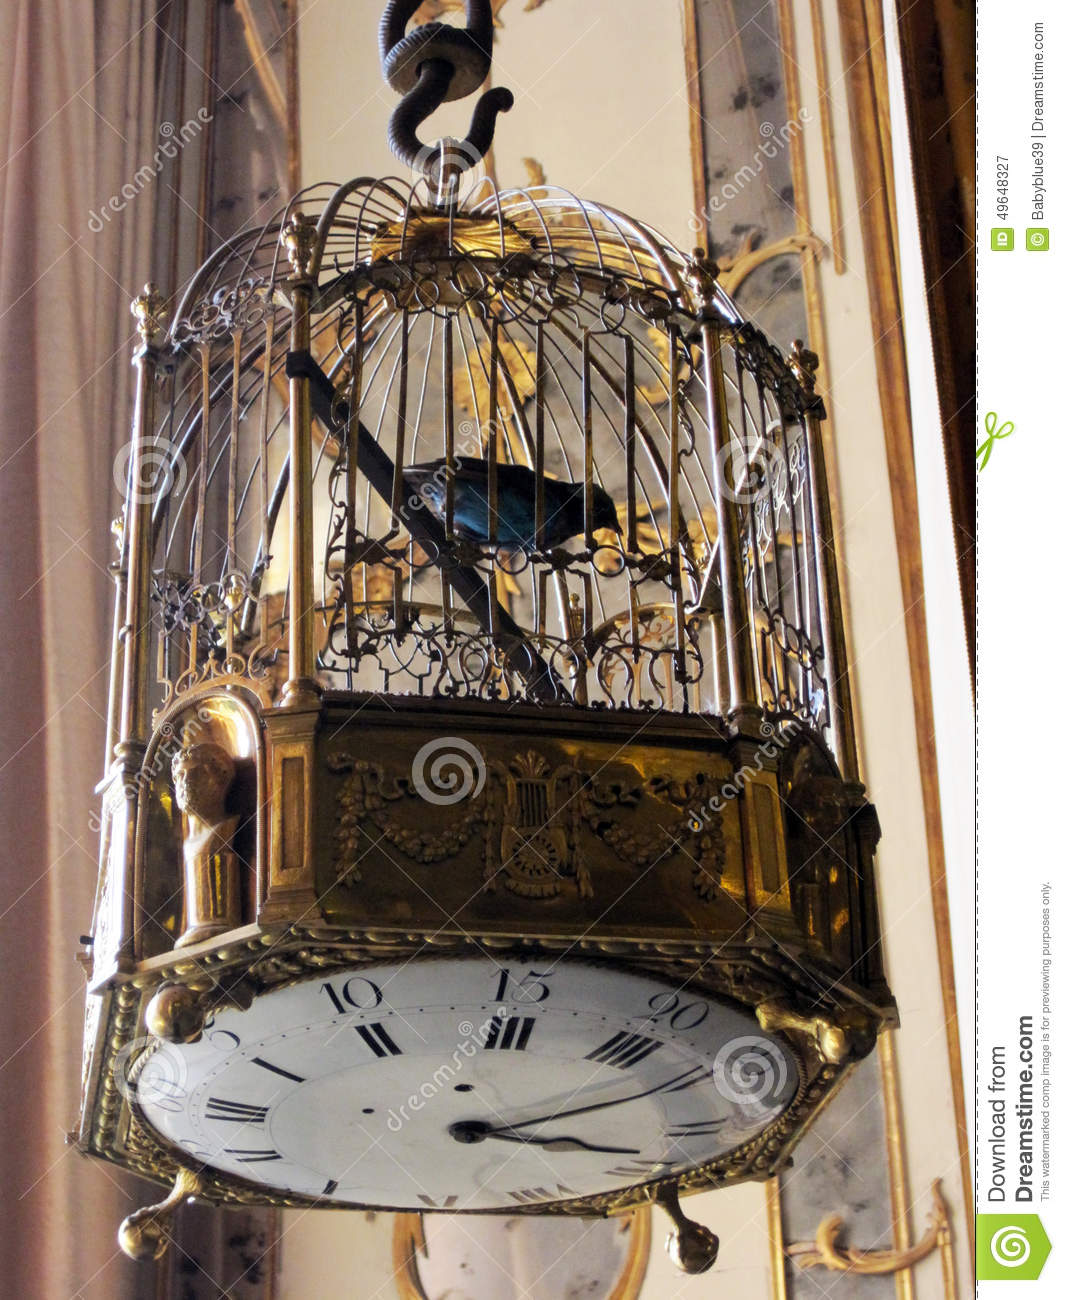 bird cage watch stock photo image 49648327. Black Bedroom Furniture Sets. Home Design Ideas